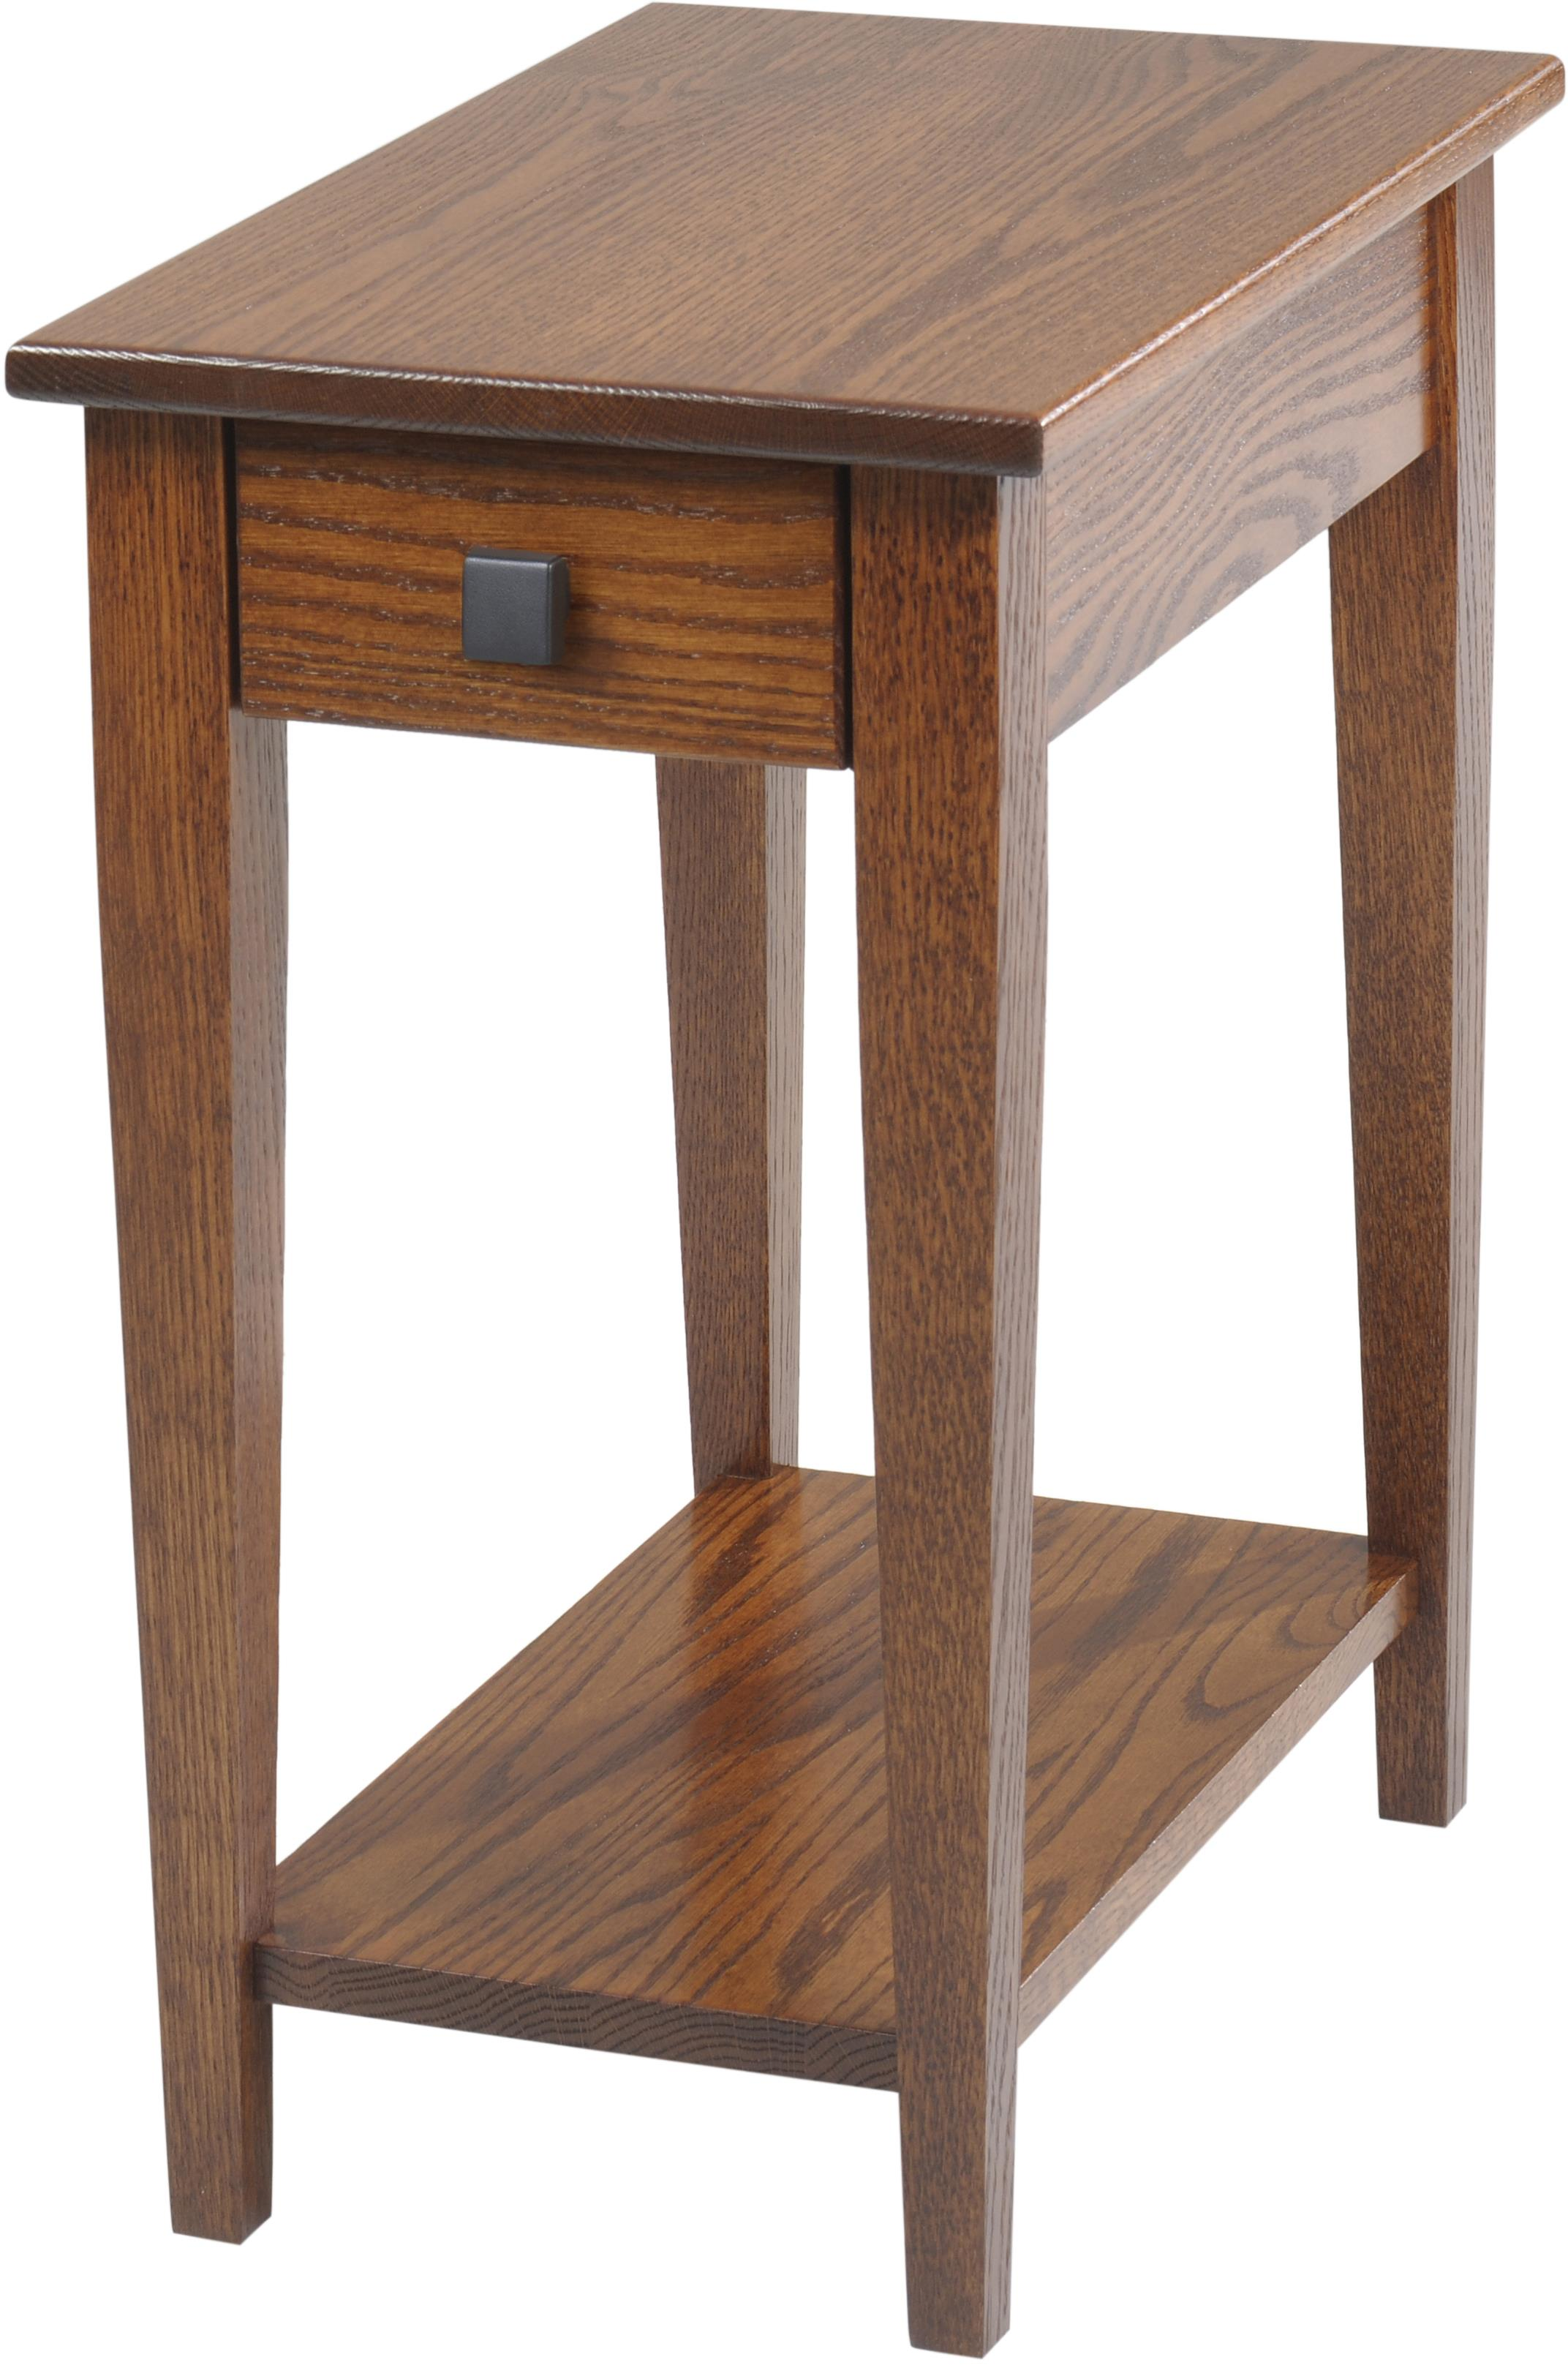 Woodland Shaker Chairside Table with Shelf by Y & T Woodcraft at Saugerties Furniture Mart